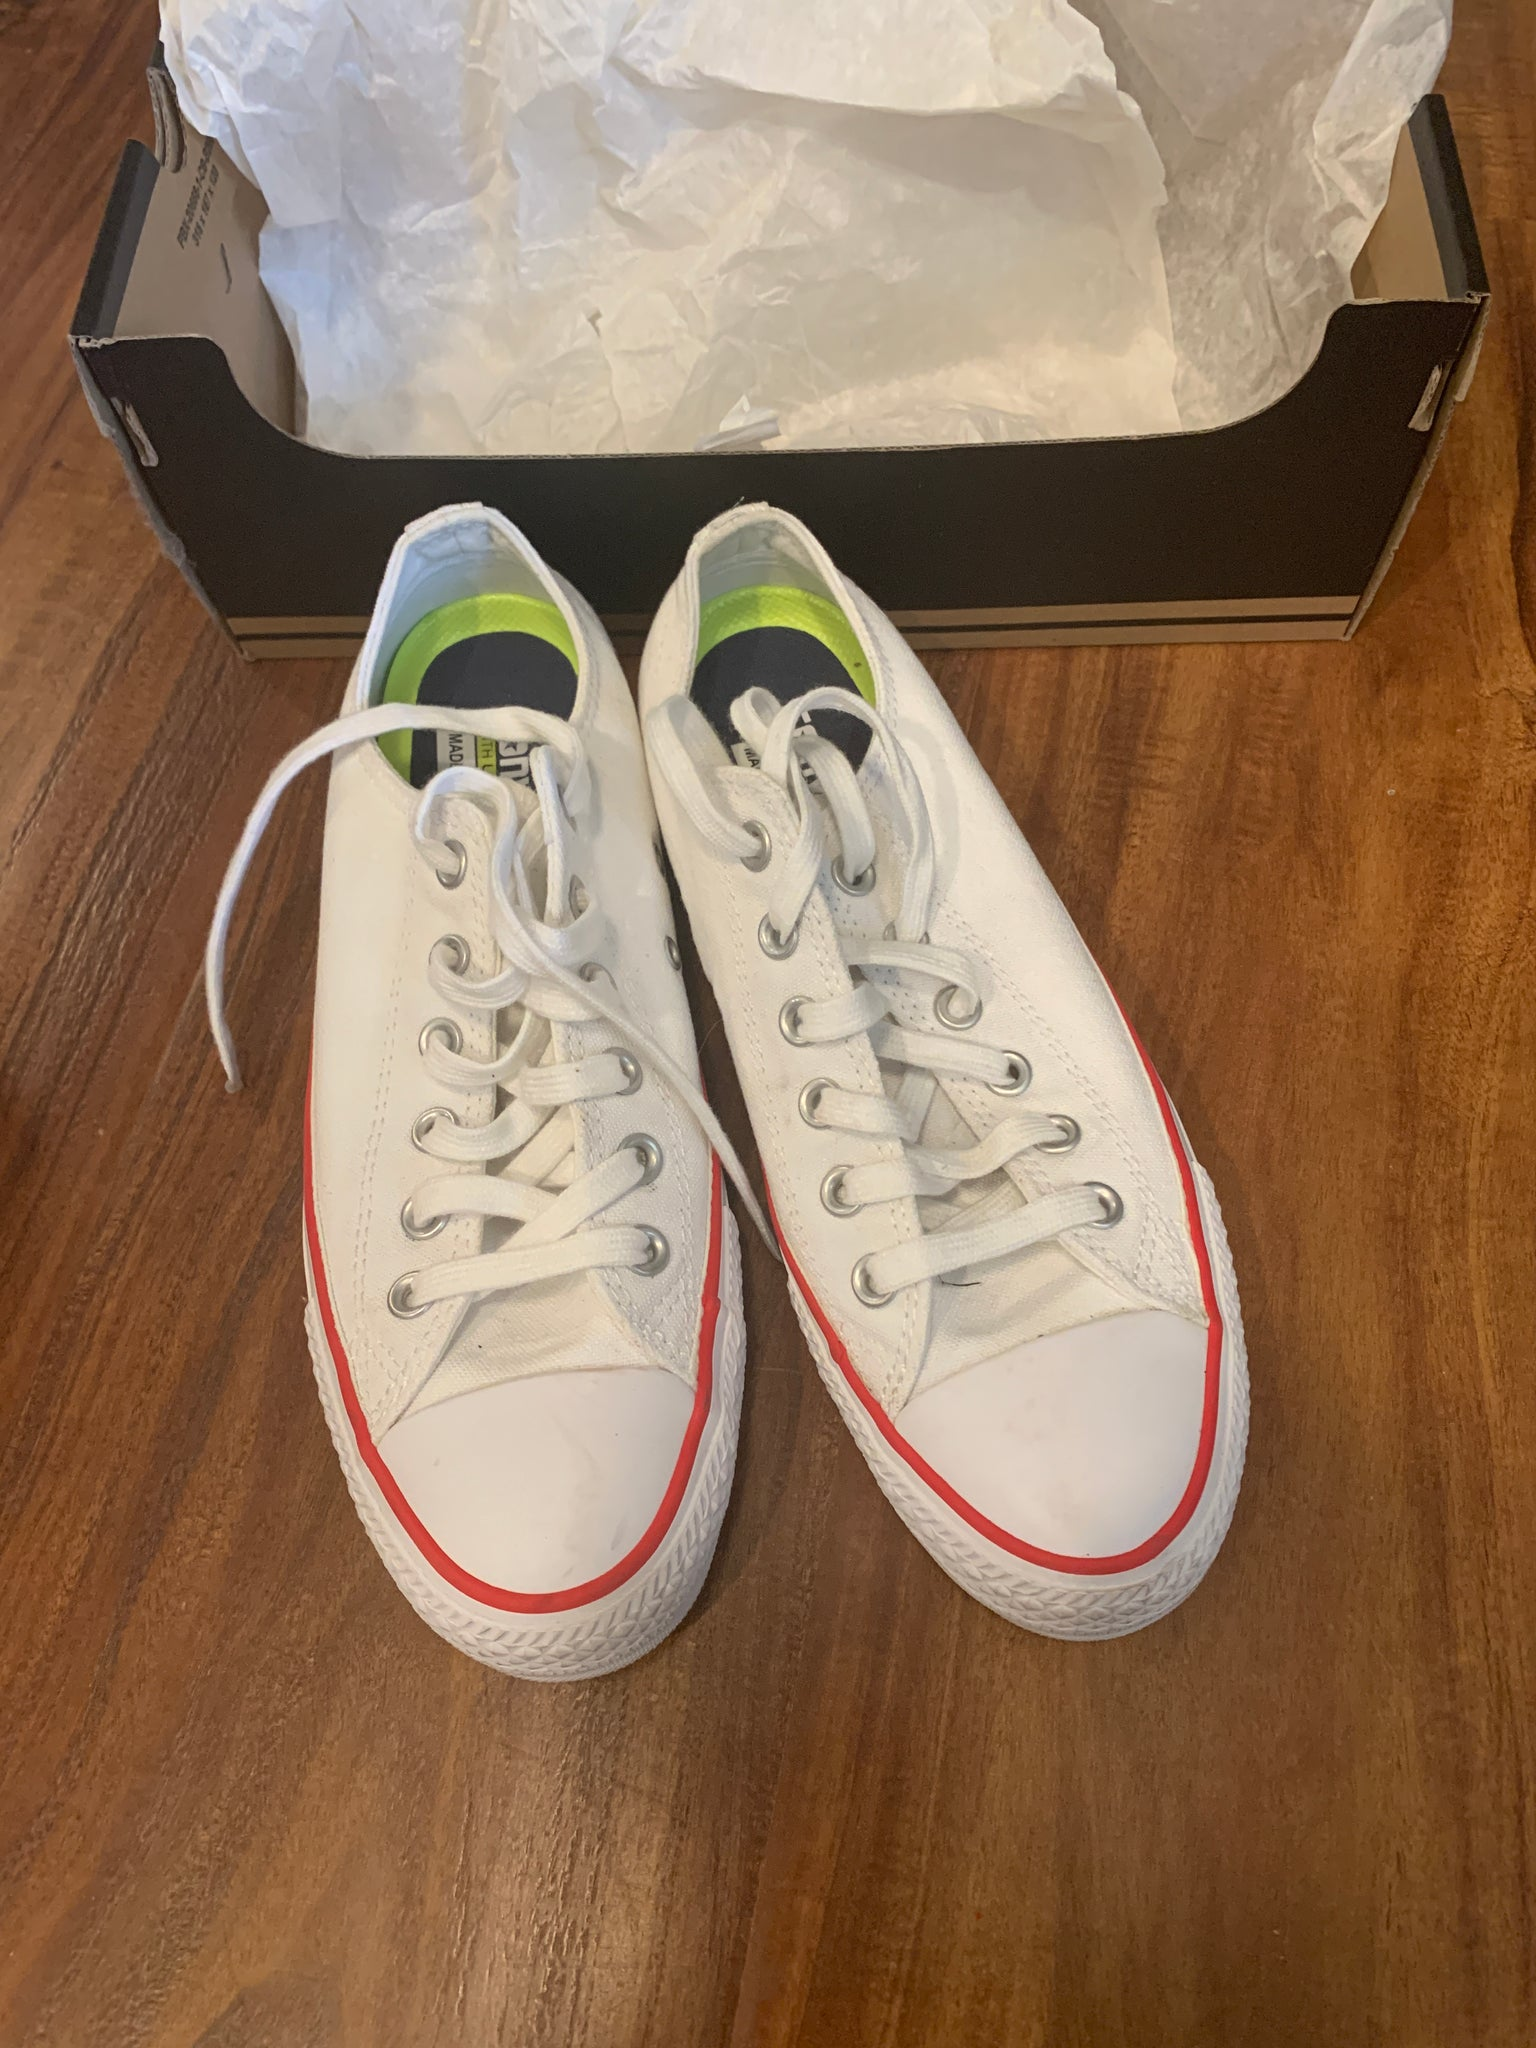 Converse Shoes Size 7 Mens/9 Womens (Worn once)